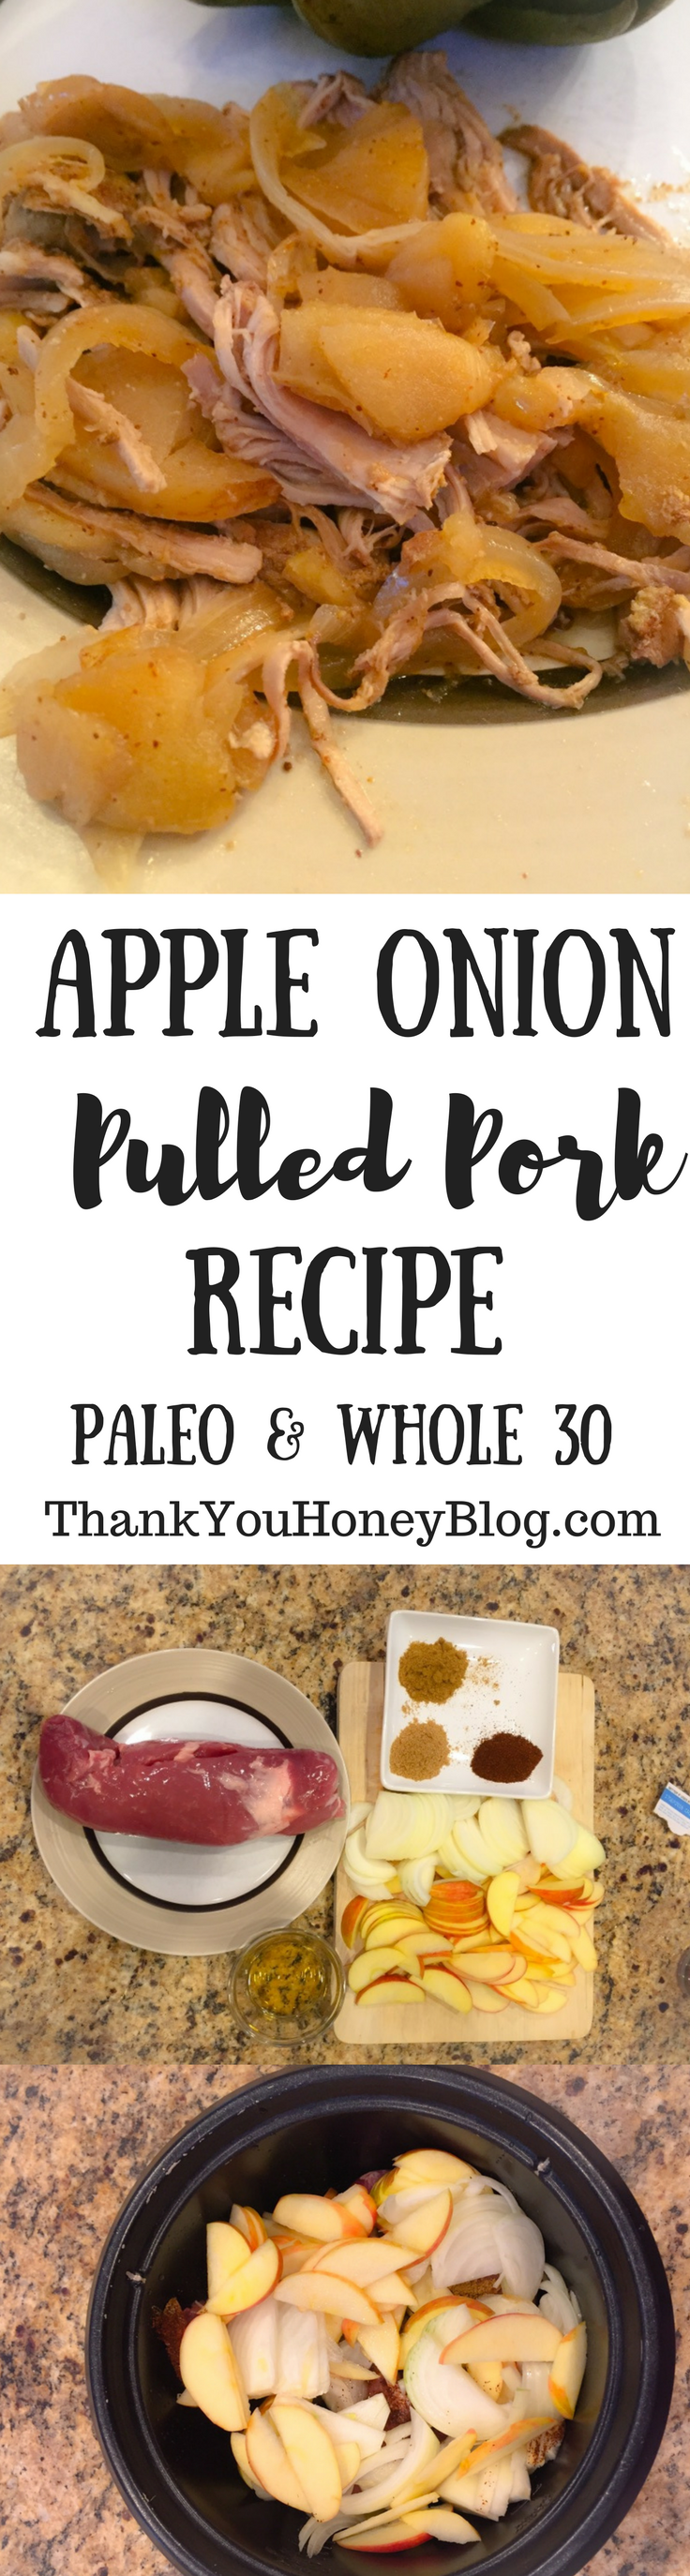 Apple Onion Pulled Pork Recipe Paleo, Whole 30